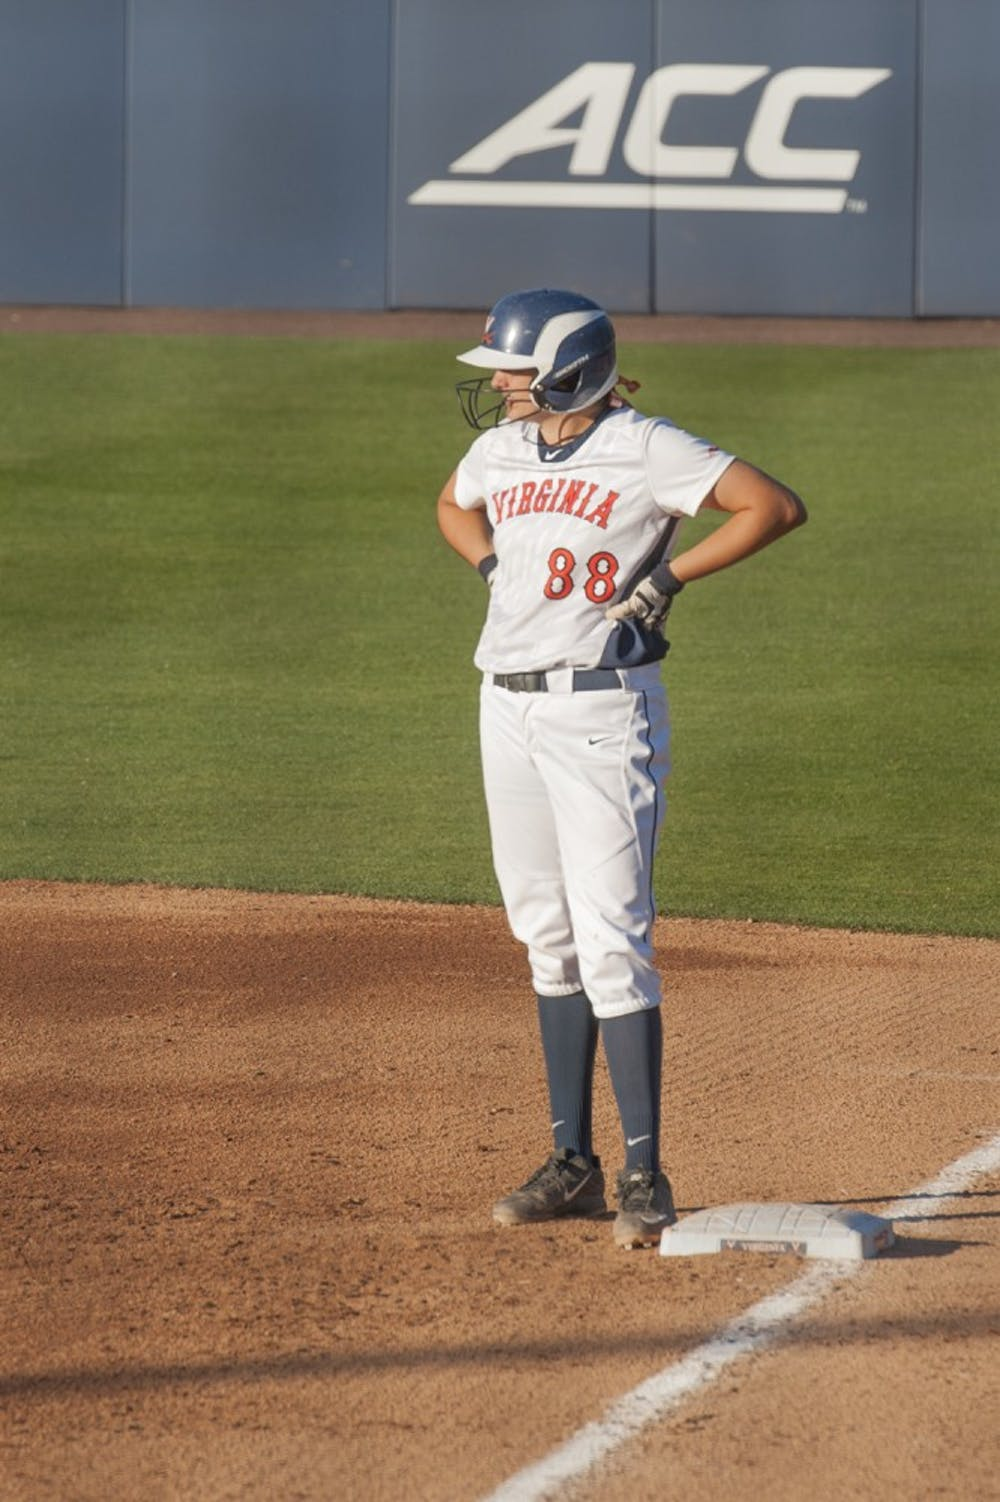 <p>Sophomore&nbsp;Olivia Gott currently has the fourth-best batting average in the ACC.</p>